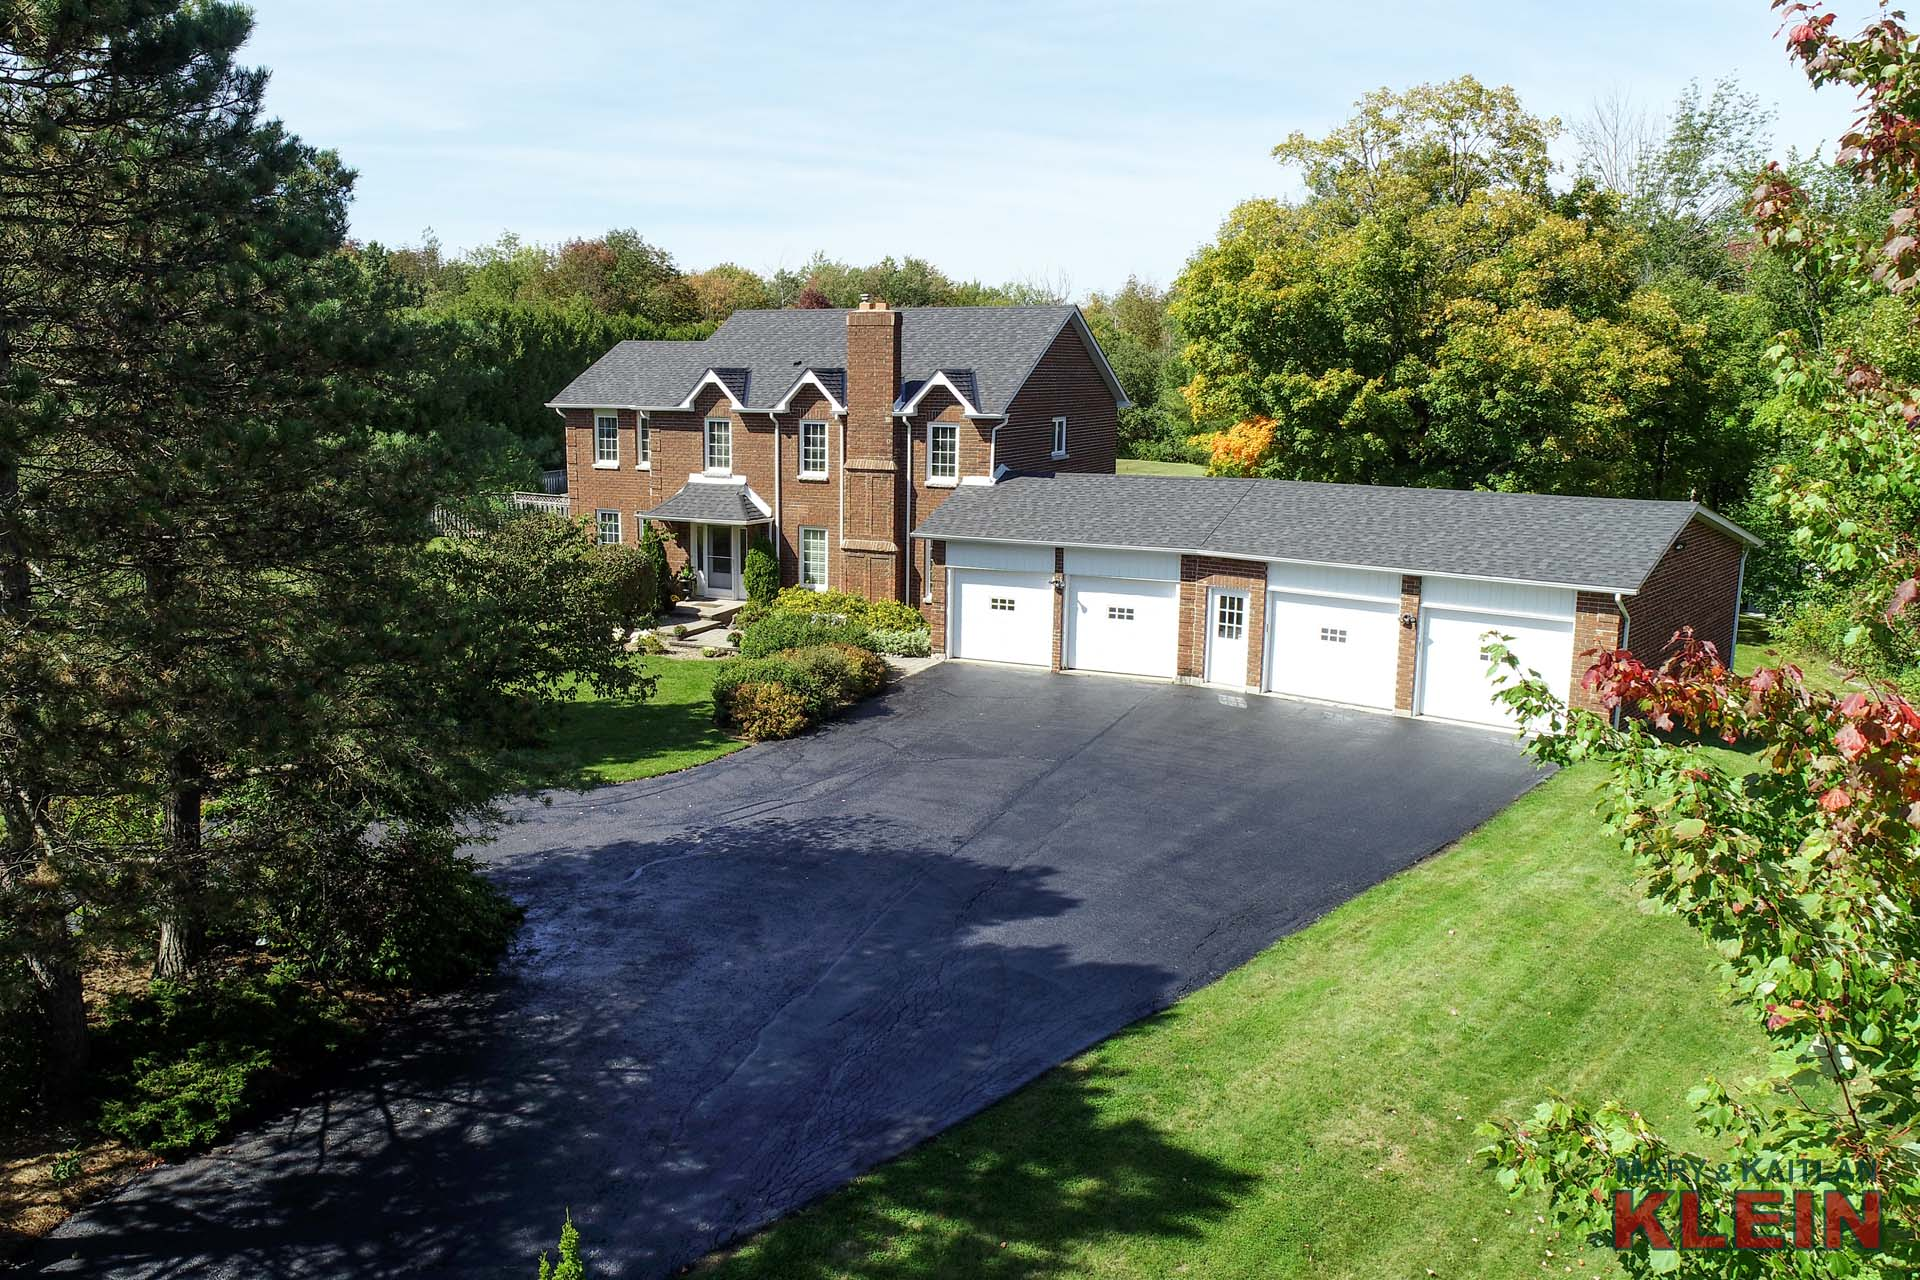 4-Bedroom Family Home for Sale in Caledon, 4 Car Garage, Klein